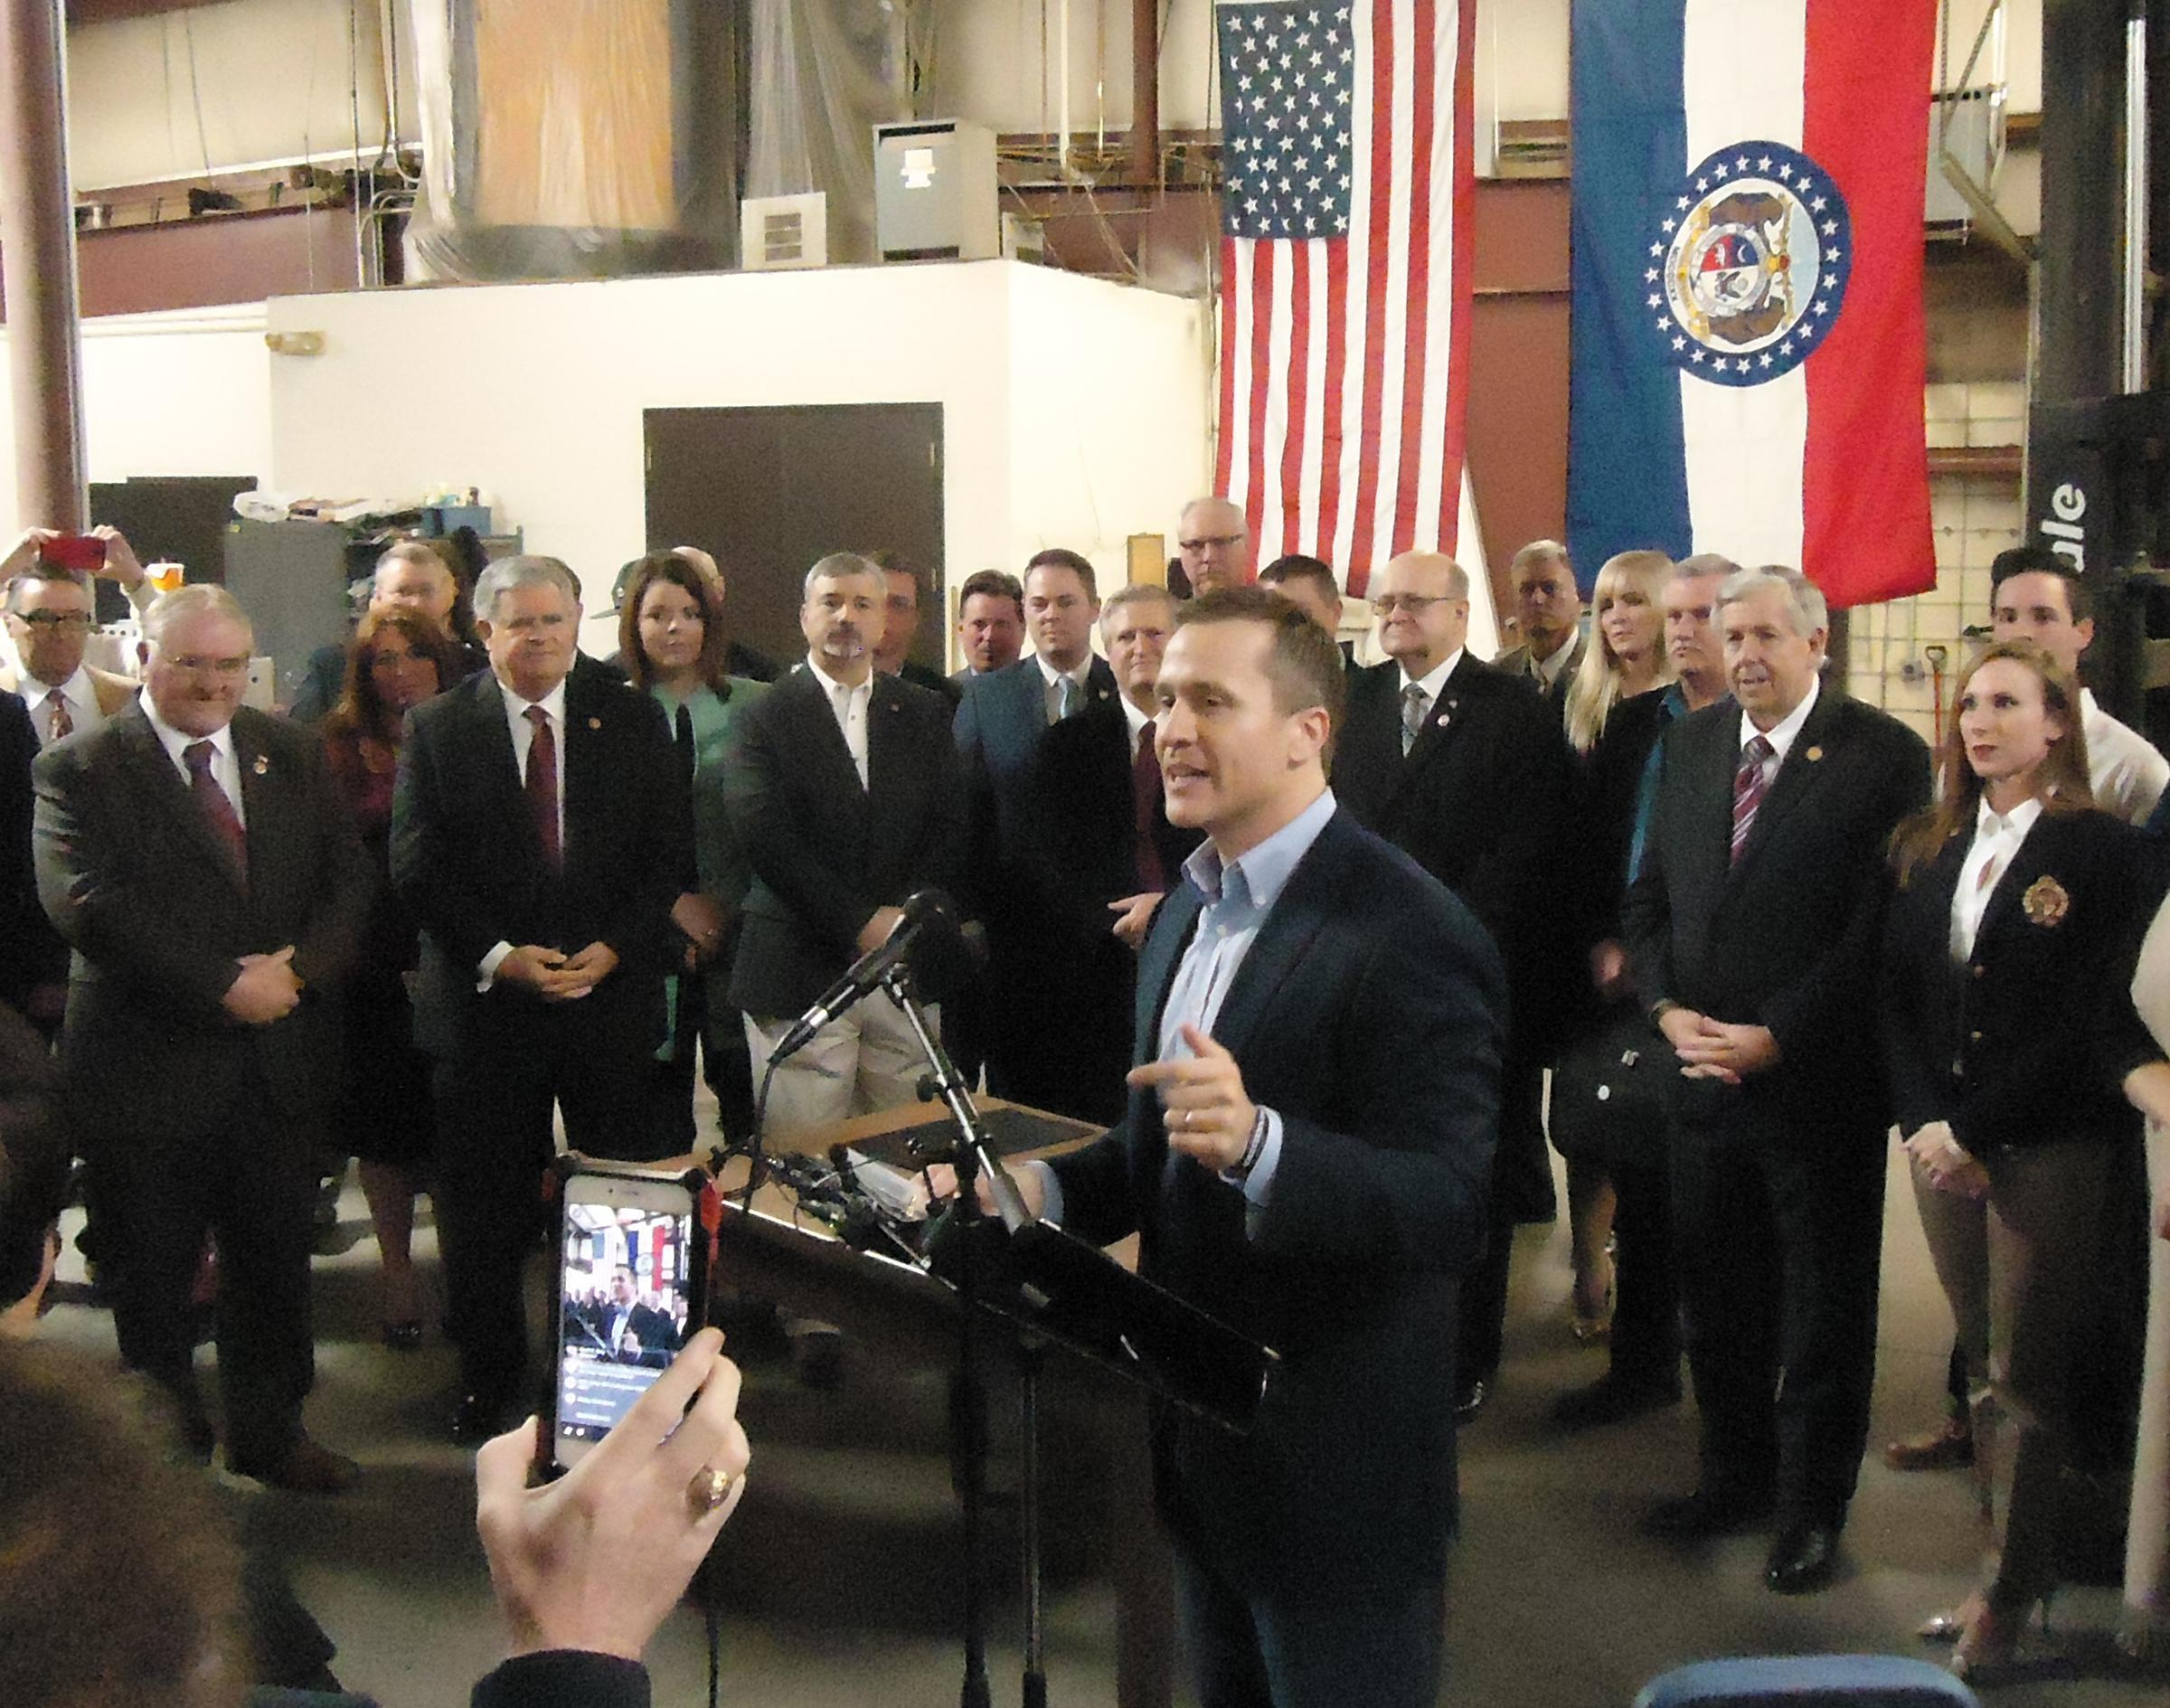 Missouri becomes right-to-work state, leaving IL surrounded